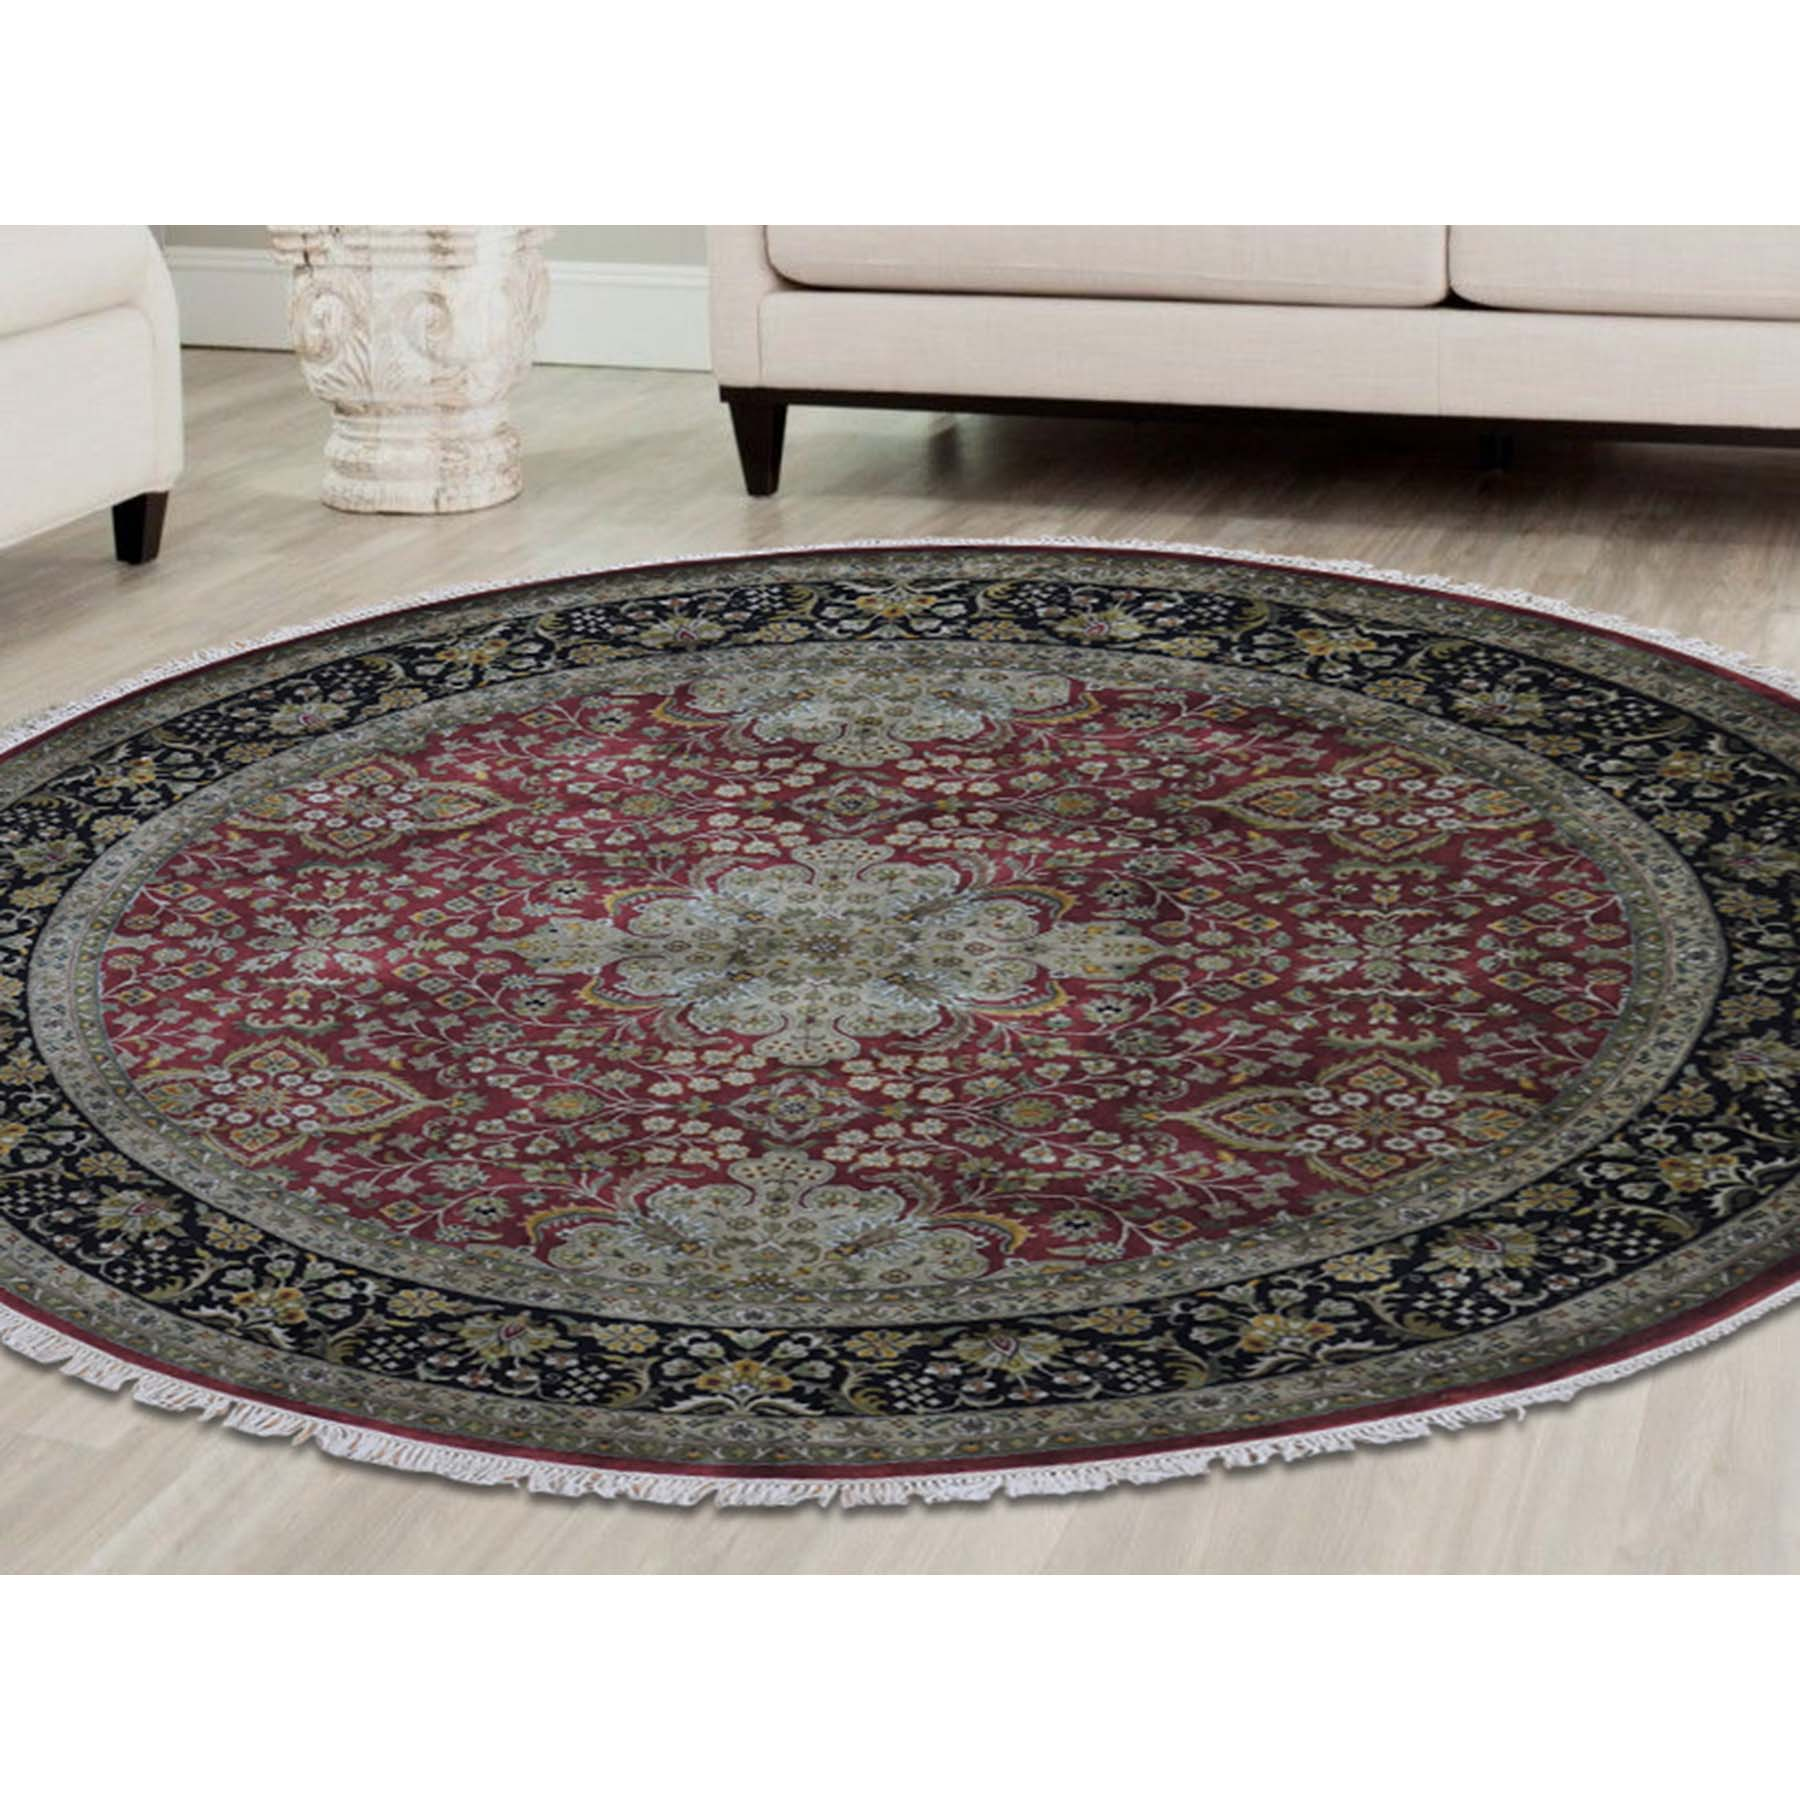 8-x8- New Zealand Wool 300 Kpsi Kashan Revival Round Hand-Knotted Oriental Rug